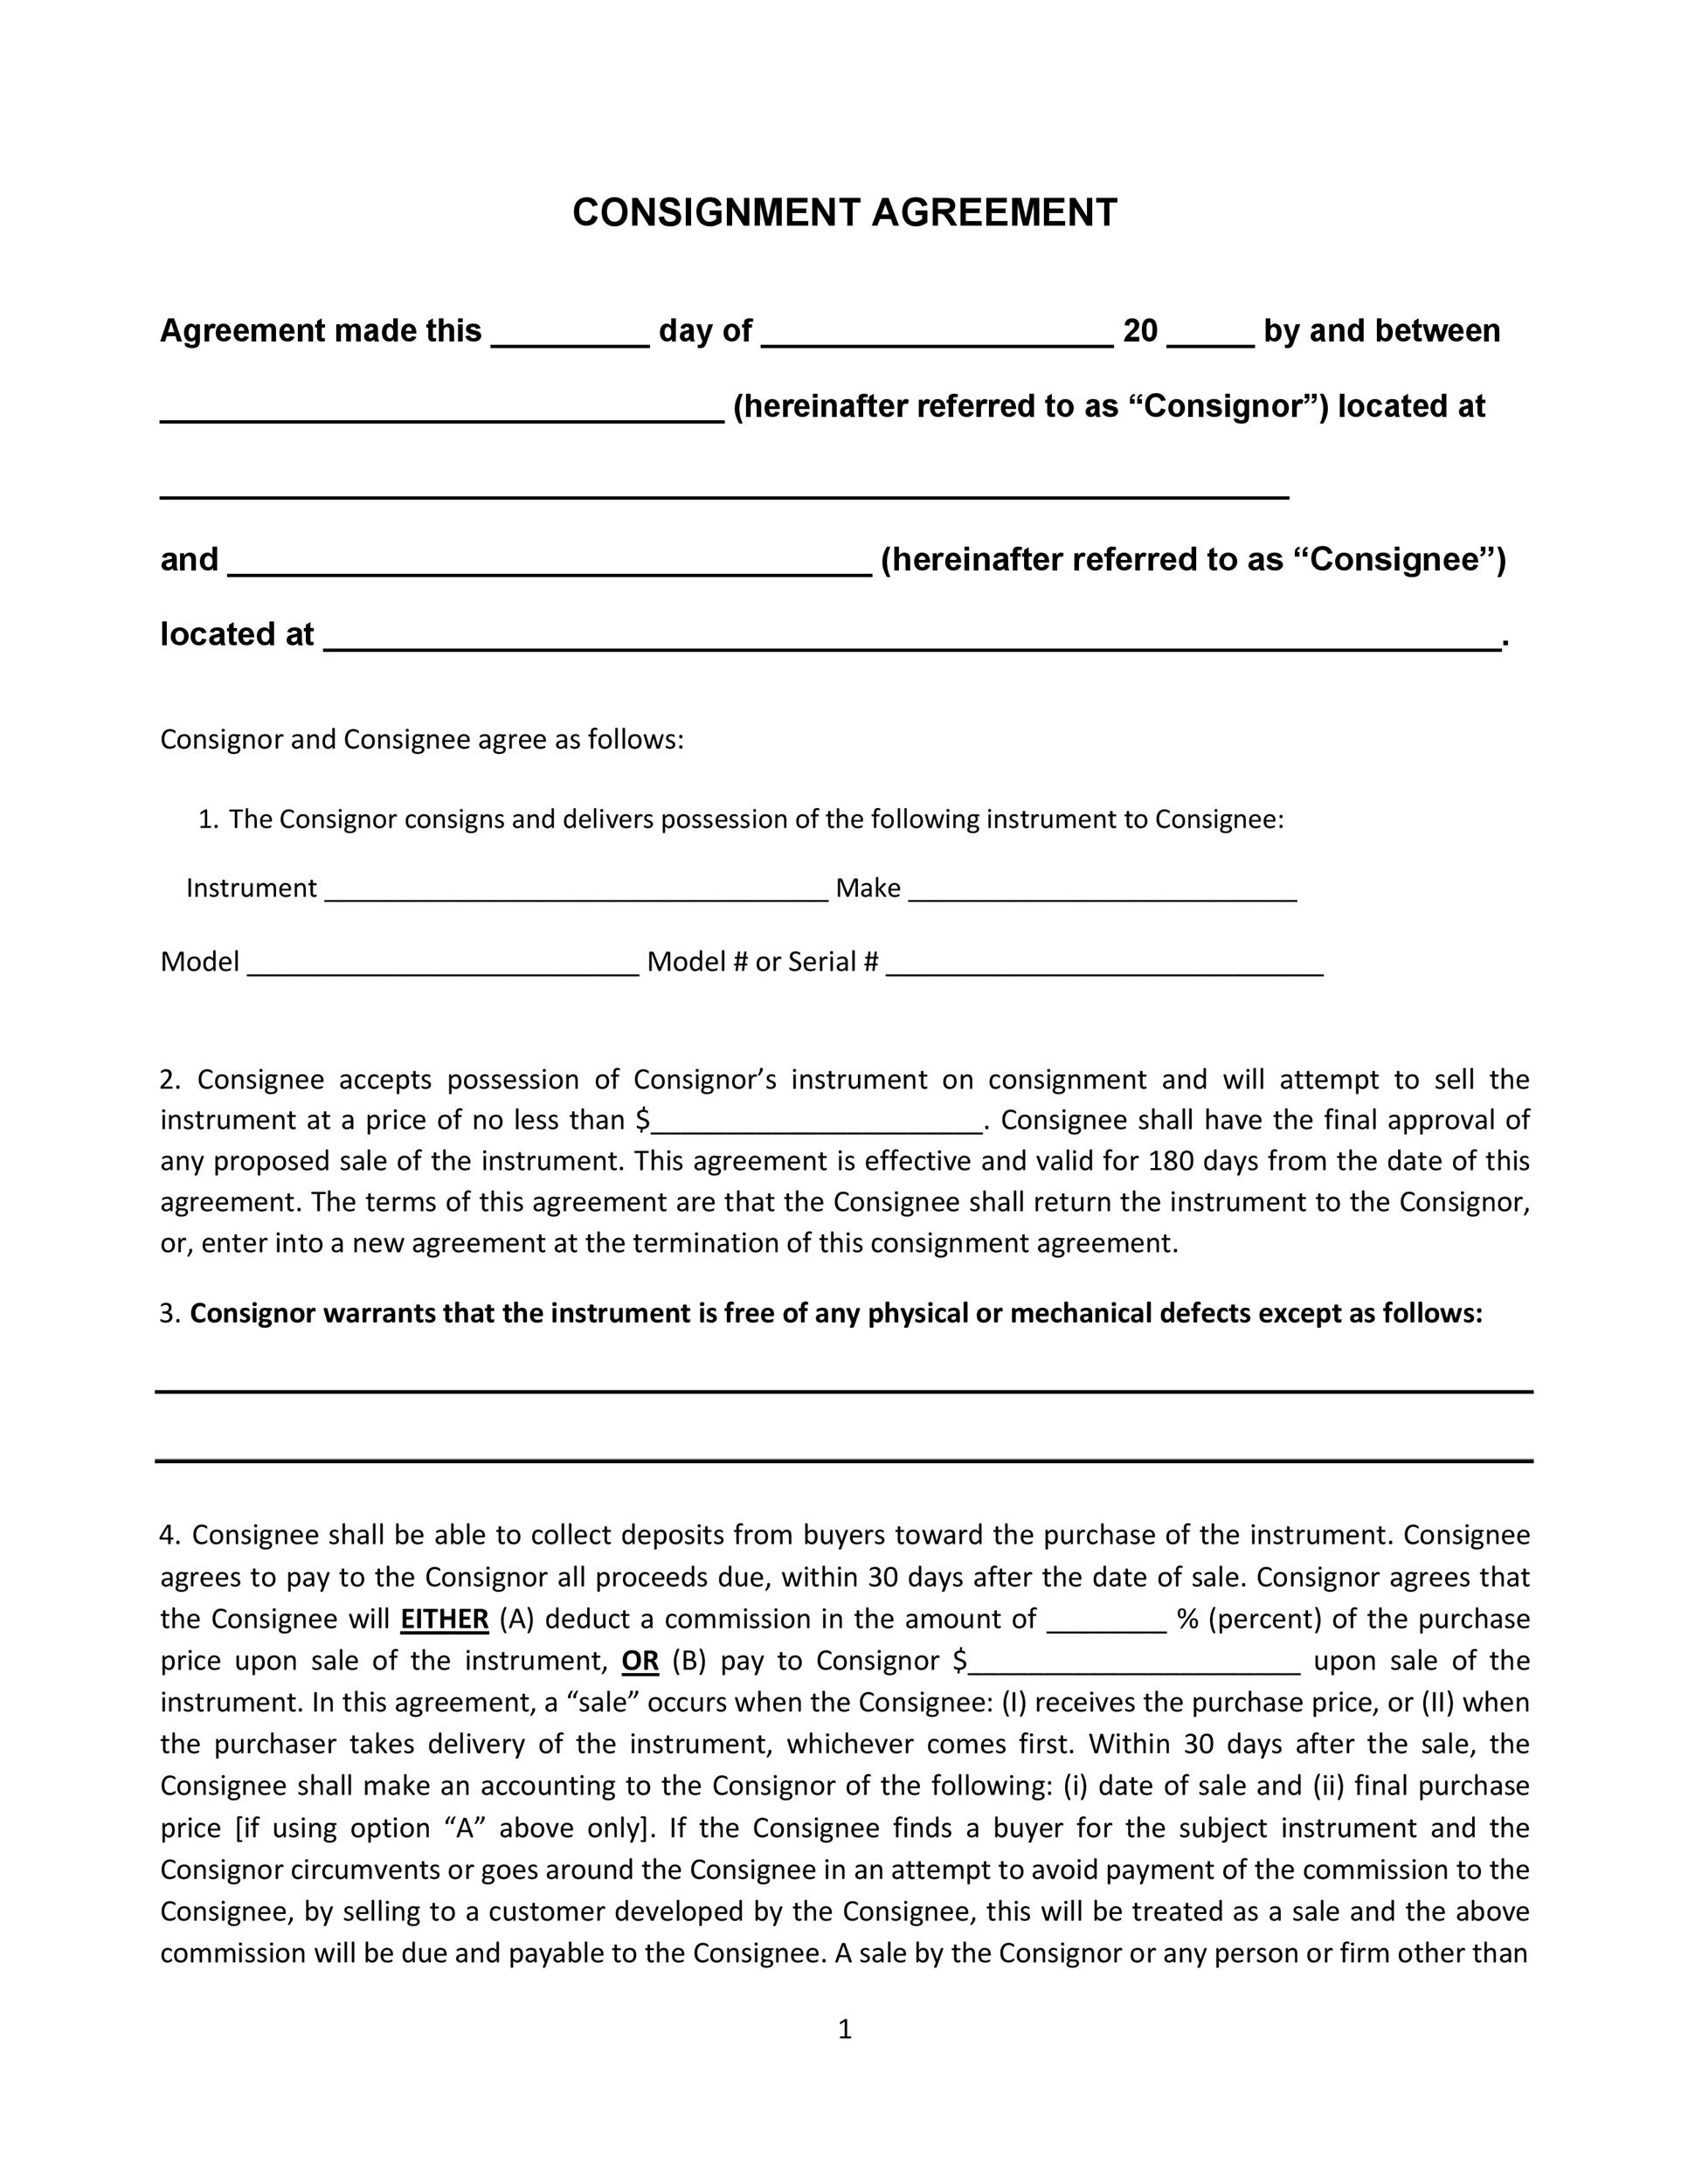 Consignment Agreement Forms  Free Consignment Agreement